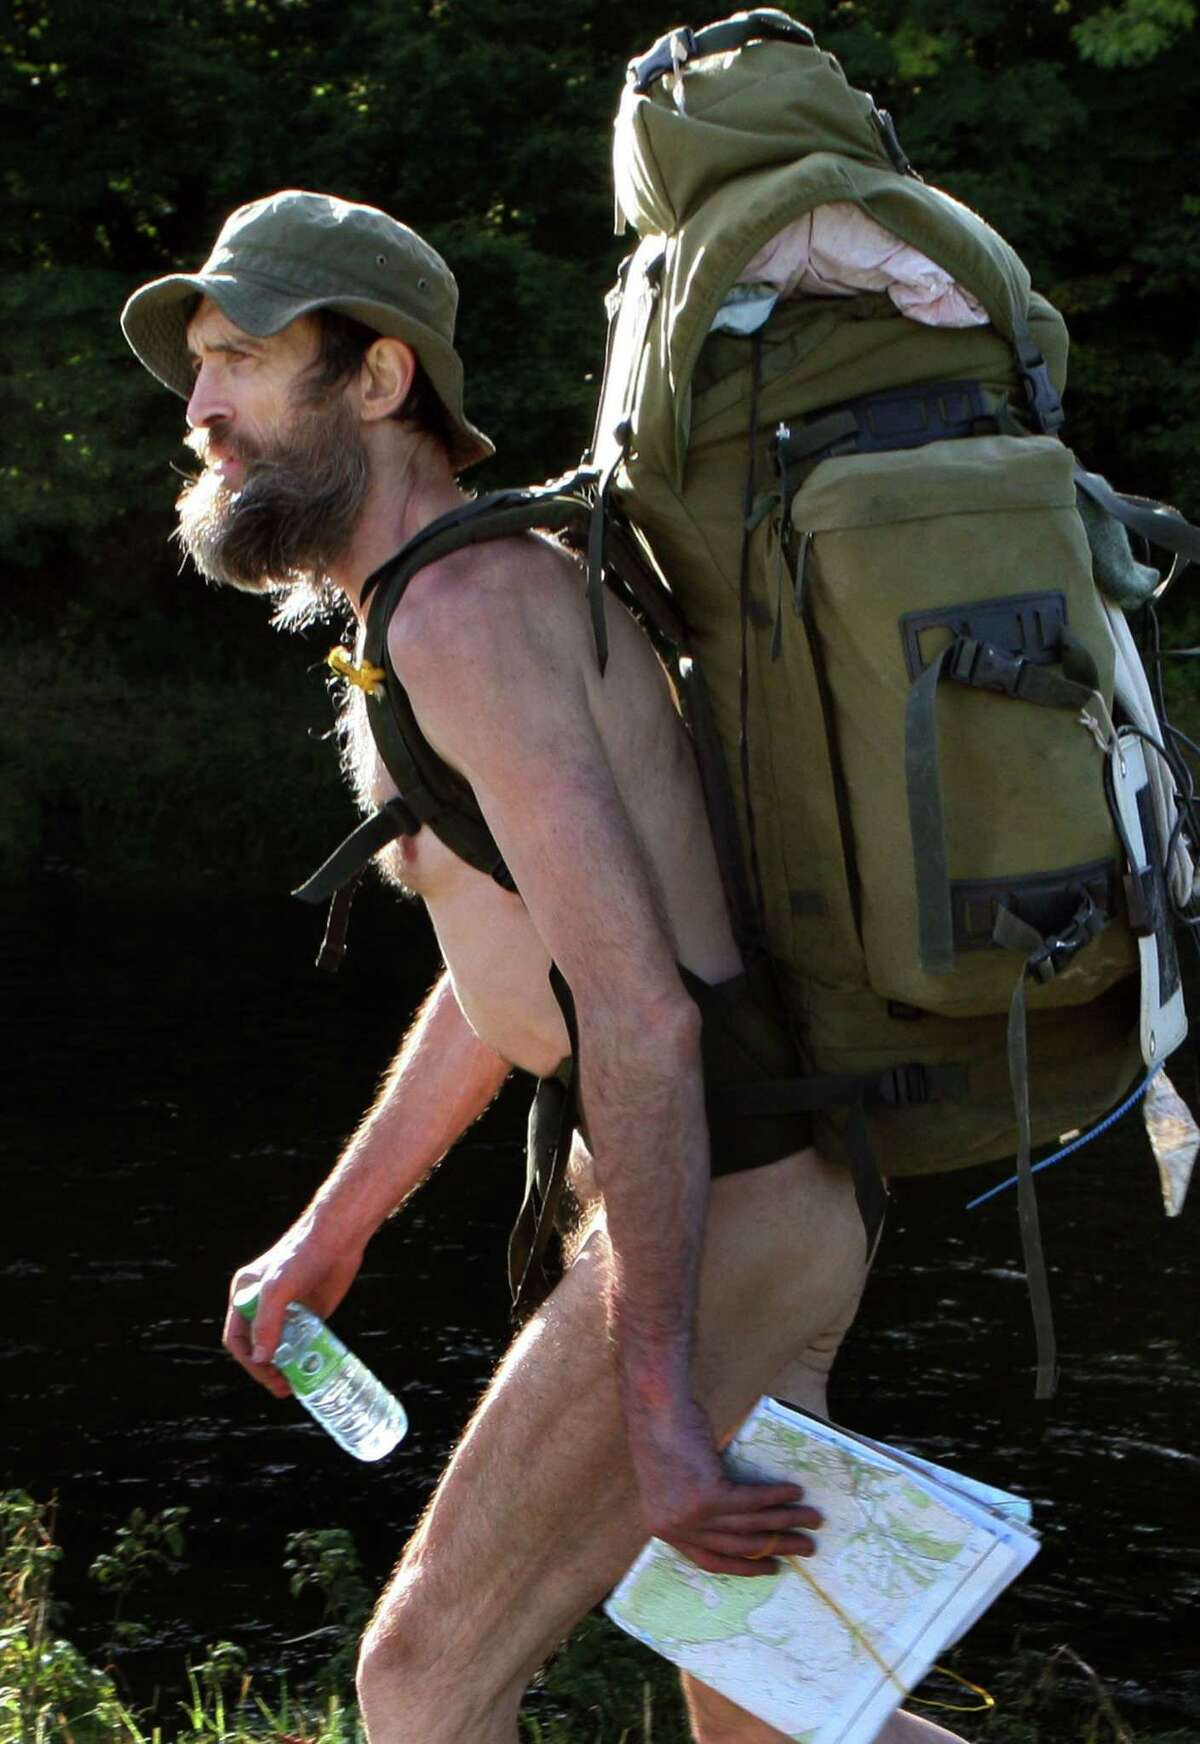 FILE - In this Monday, Oct. 2012 file photo, Stephen Gough, nicknamed the Naked Rambler, walks near Selkirk, Scotland. Gough, who spurns clothes lost a legal bid on Tuesday, Oct. 28, 2014 to have public nudity declared a human right. The European Court of Human Rights says Stephen Gough's rights were not violated by repeated arrests and convictions for being naked in public. (AP Photo/PA, David Cheskin, File)